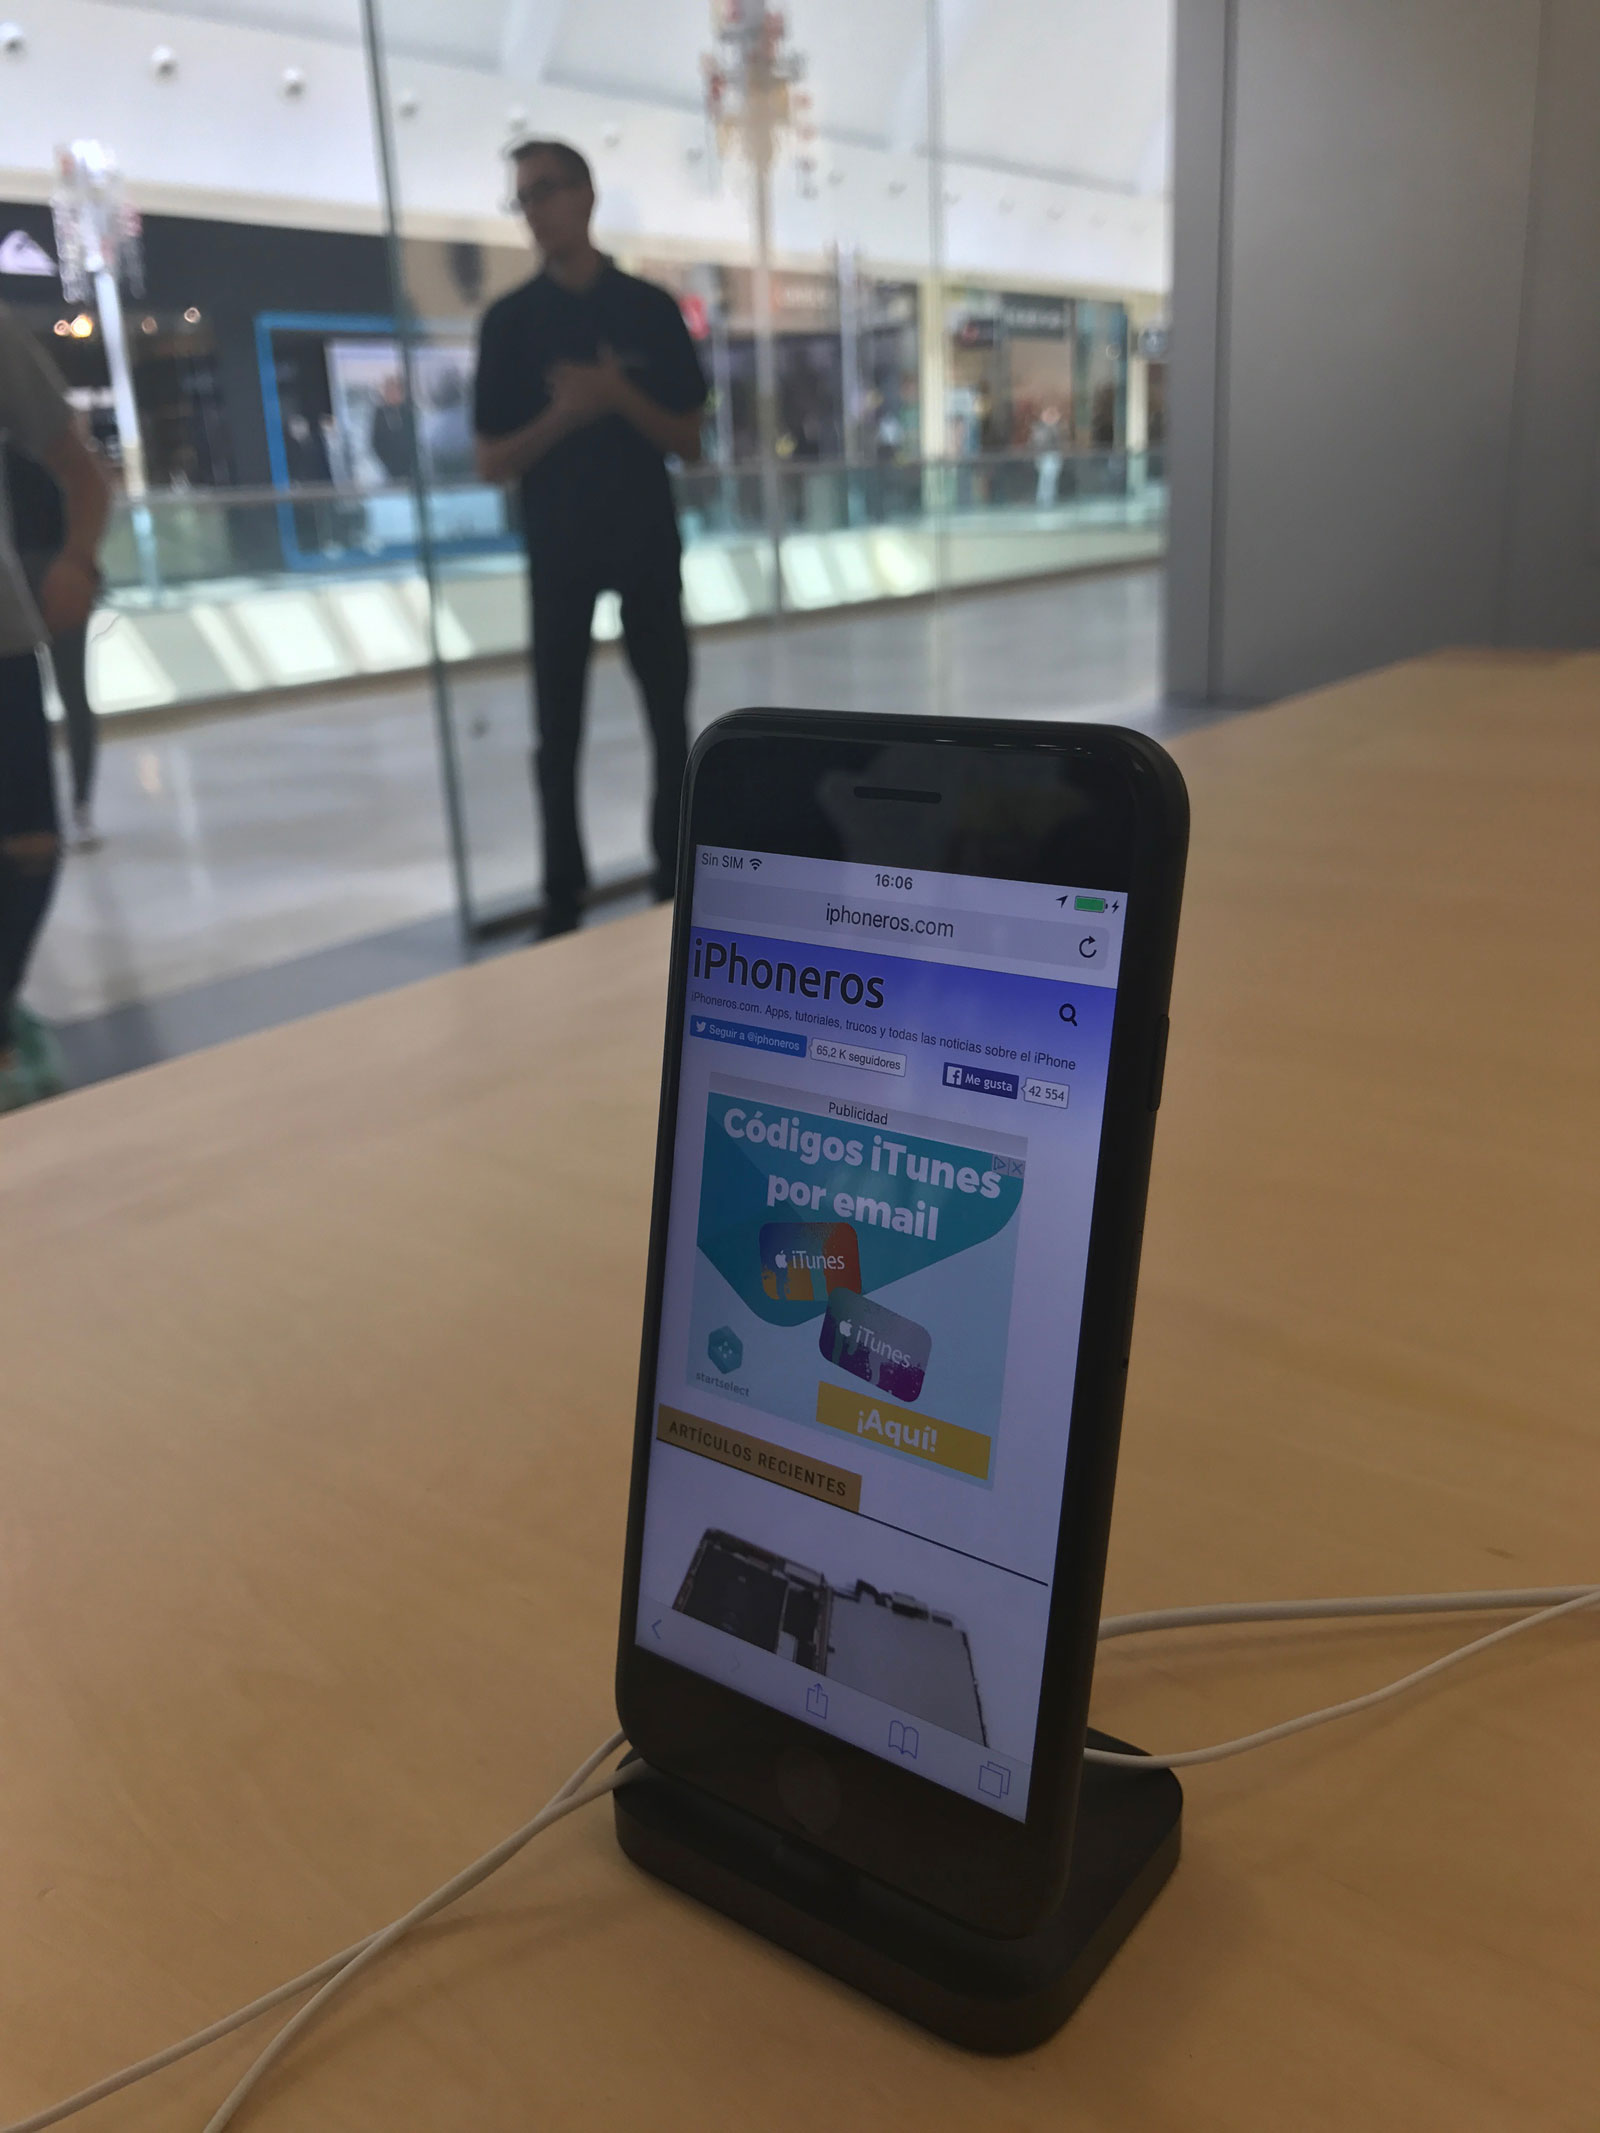 iPhone 7 con iPhoneros cargada en una Apple Store